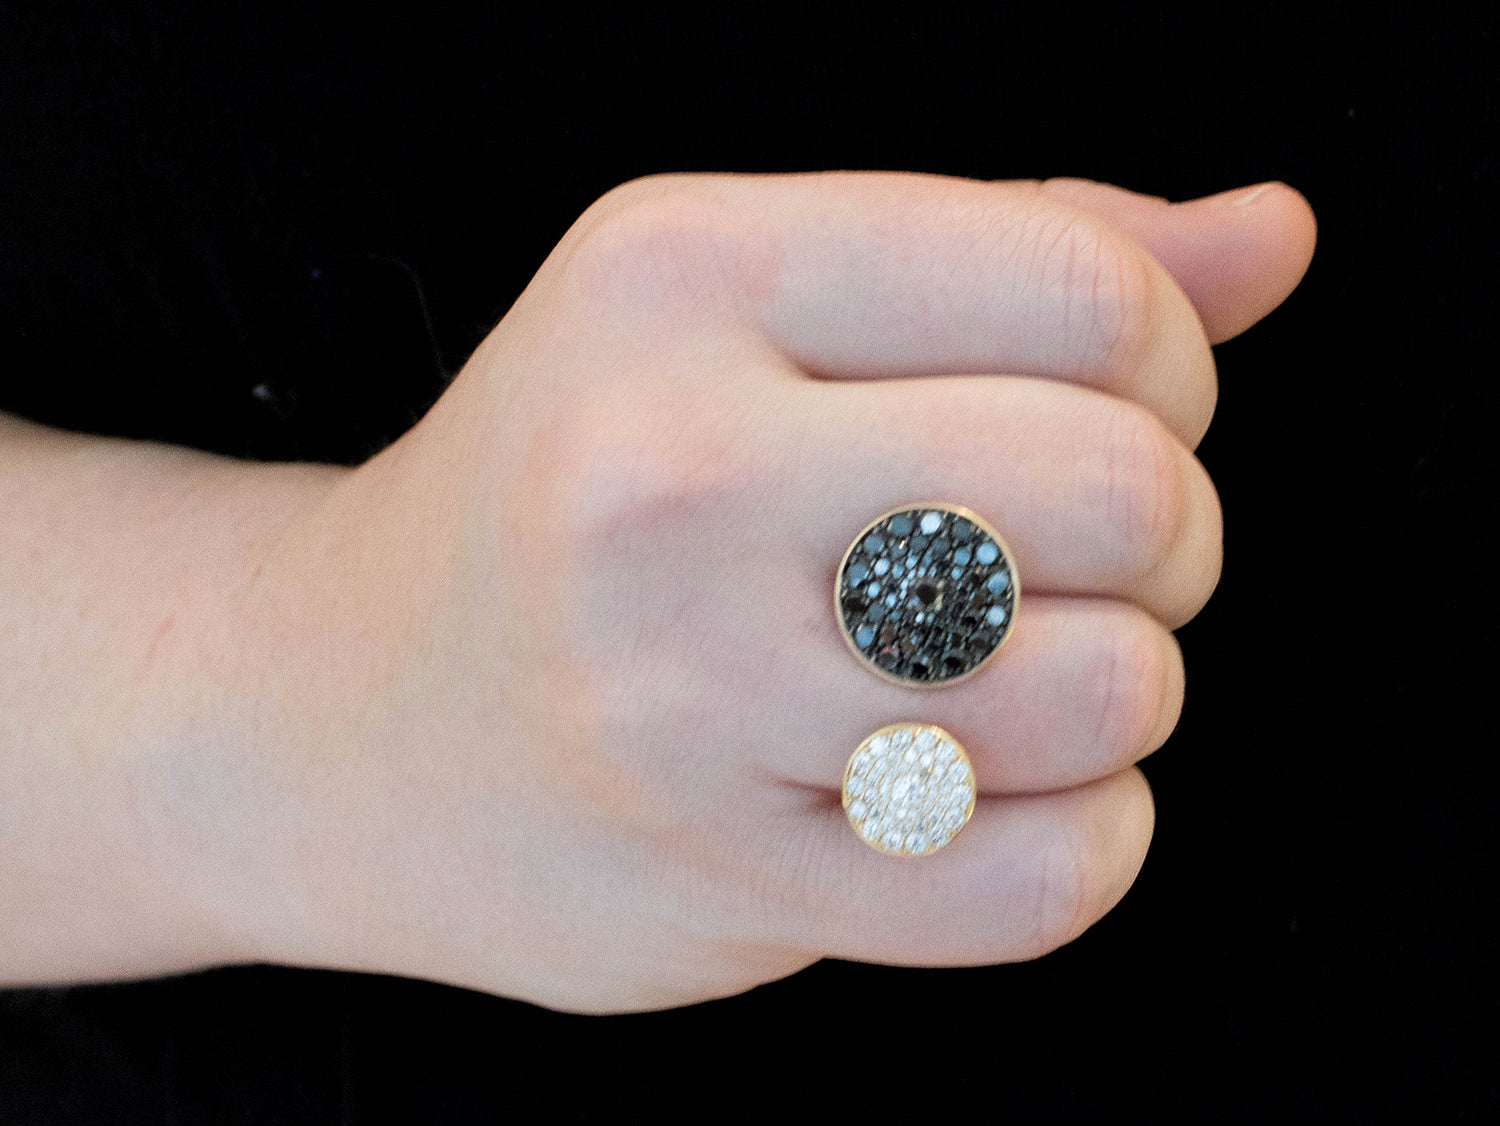 Unique Black Diamond Ring in Washington DC